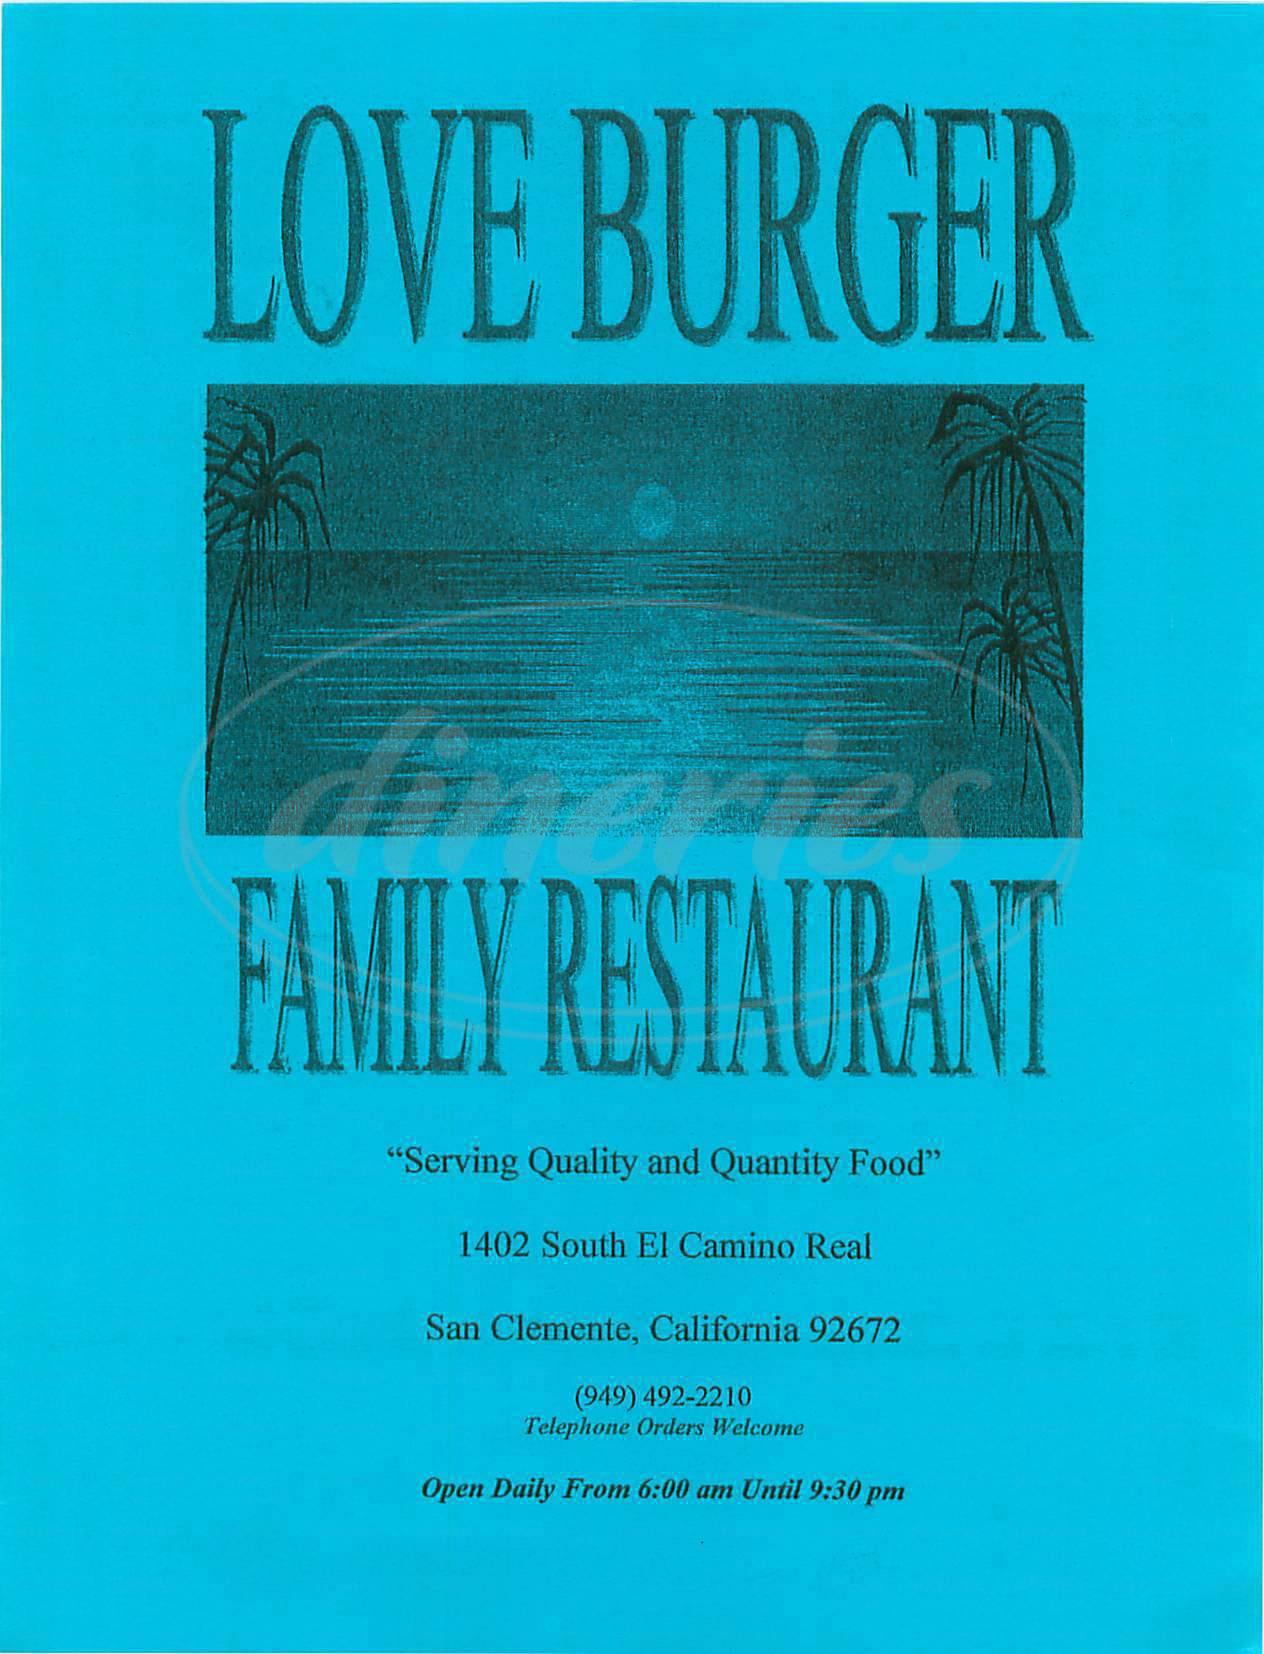 menu for Love Burger